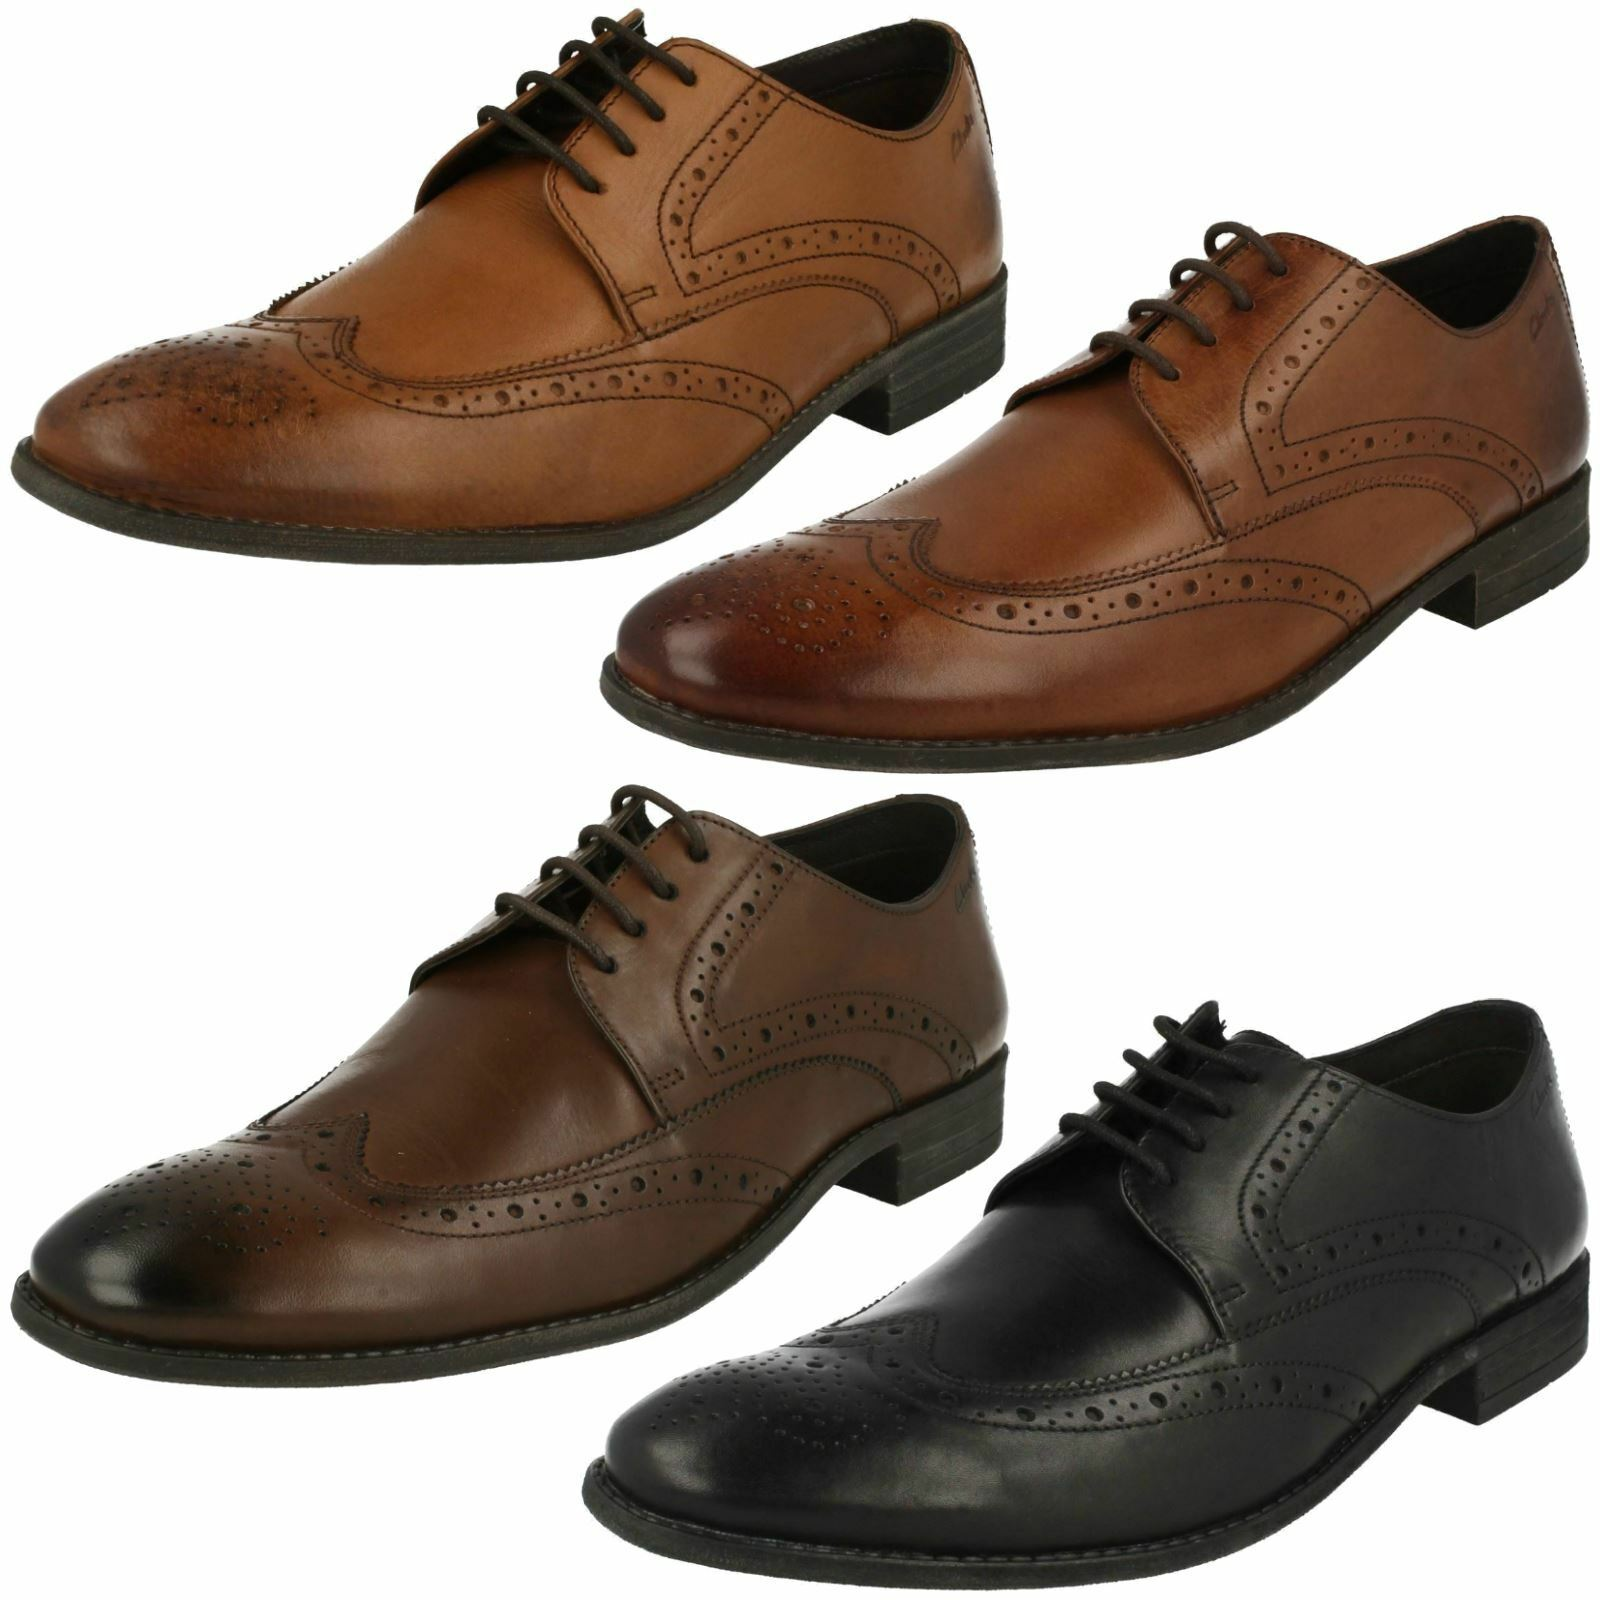 Mens Clarks Rounded Toe Lace Up Smart Leather Brogues Chart Limit